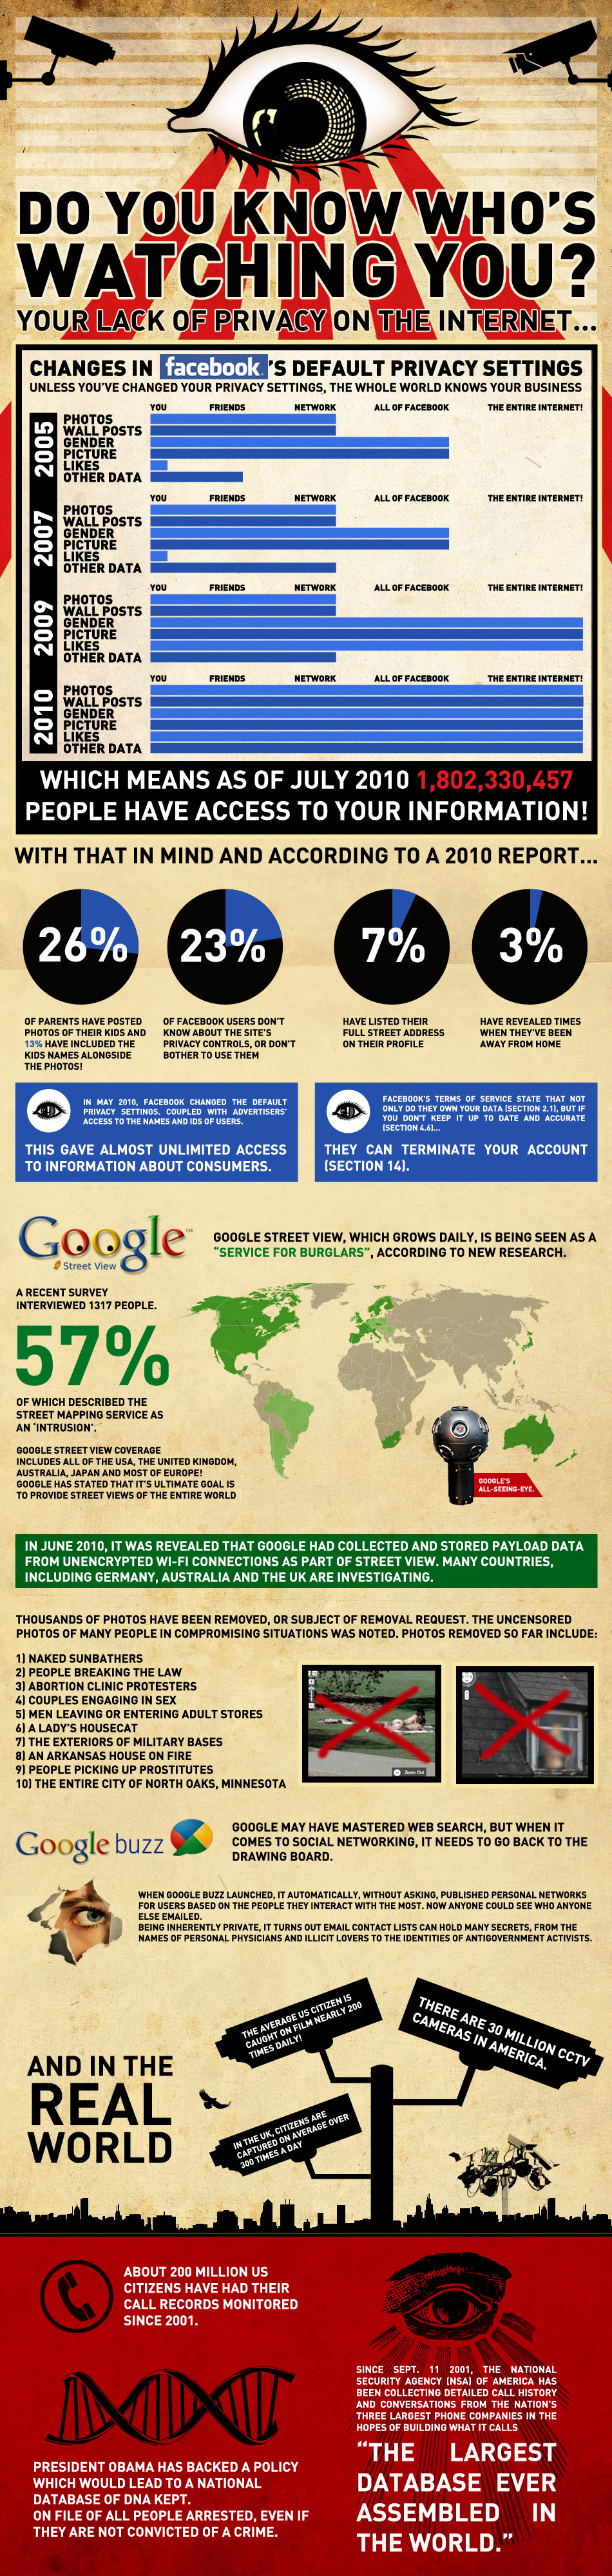 Google and Facebook Privacy Infographic